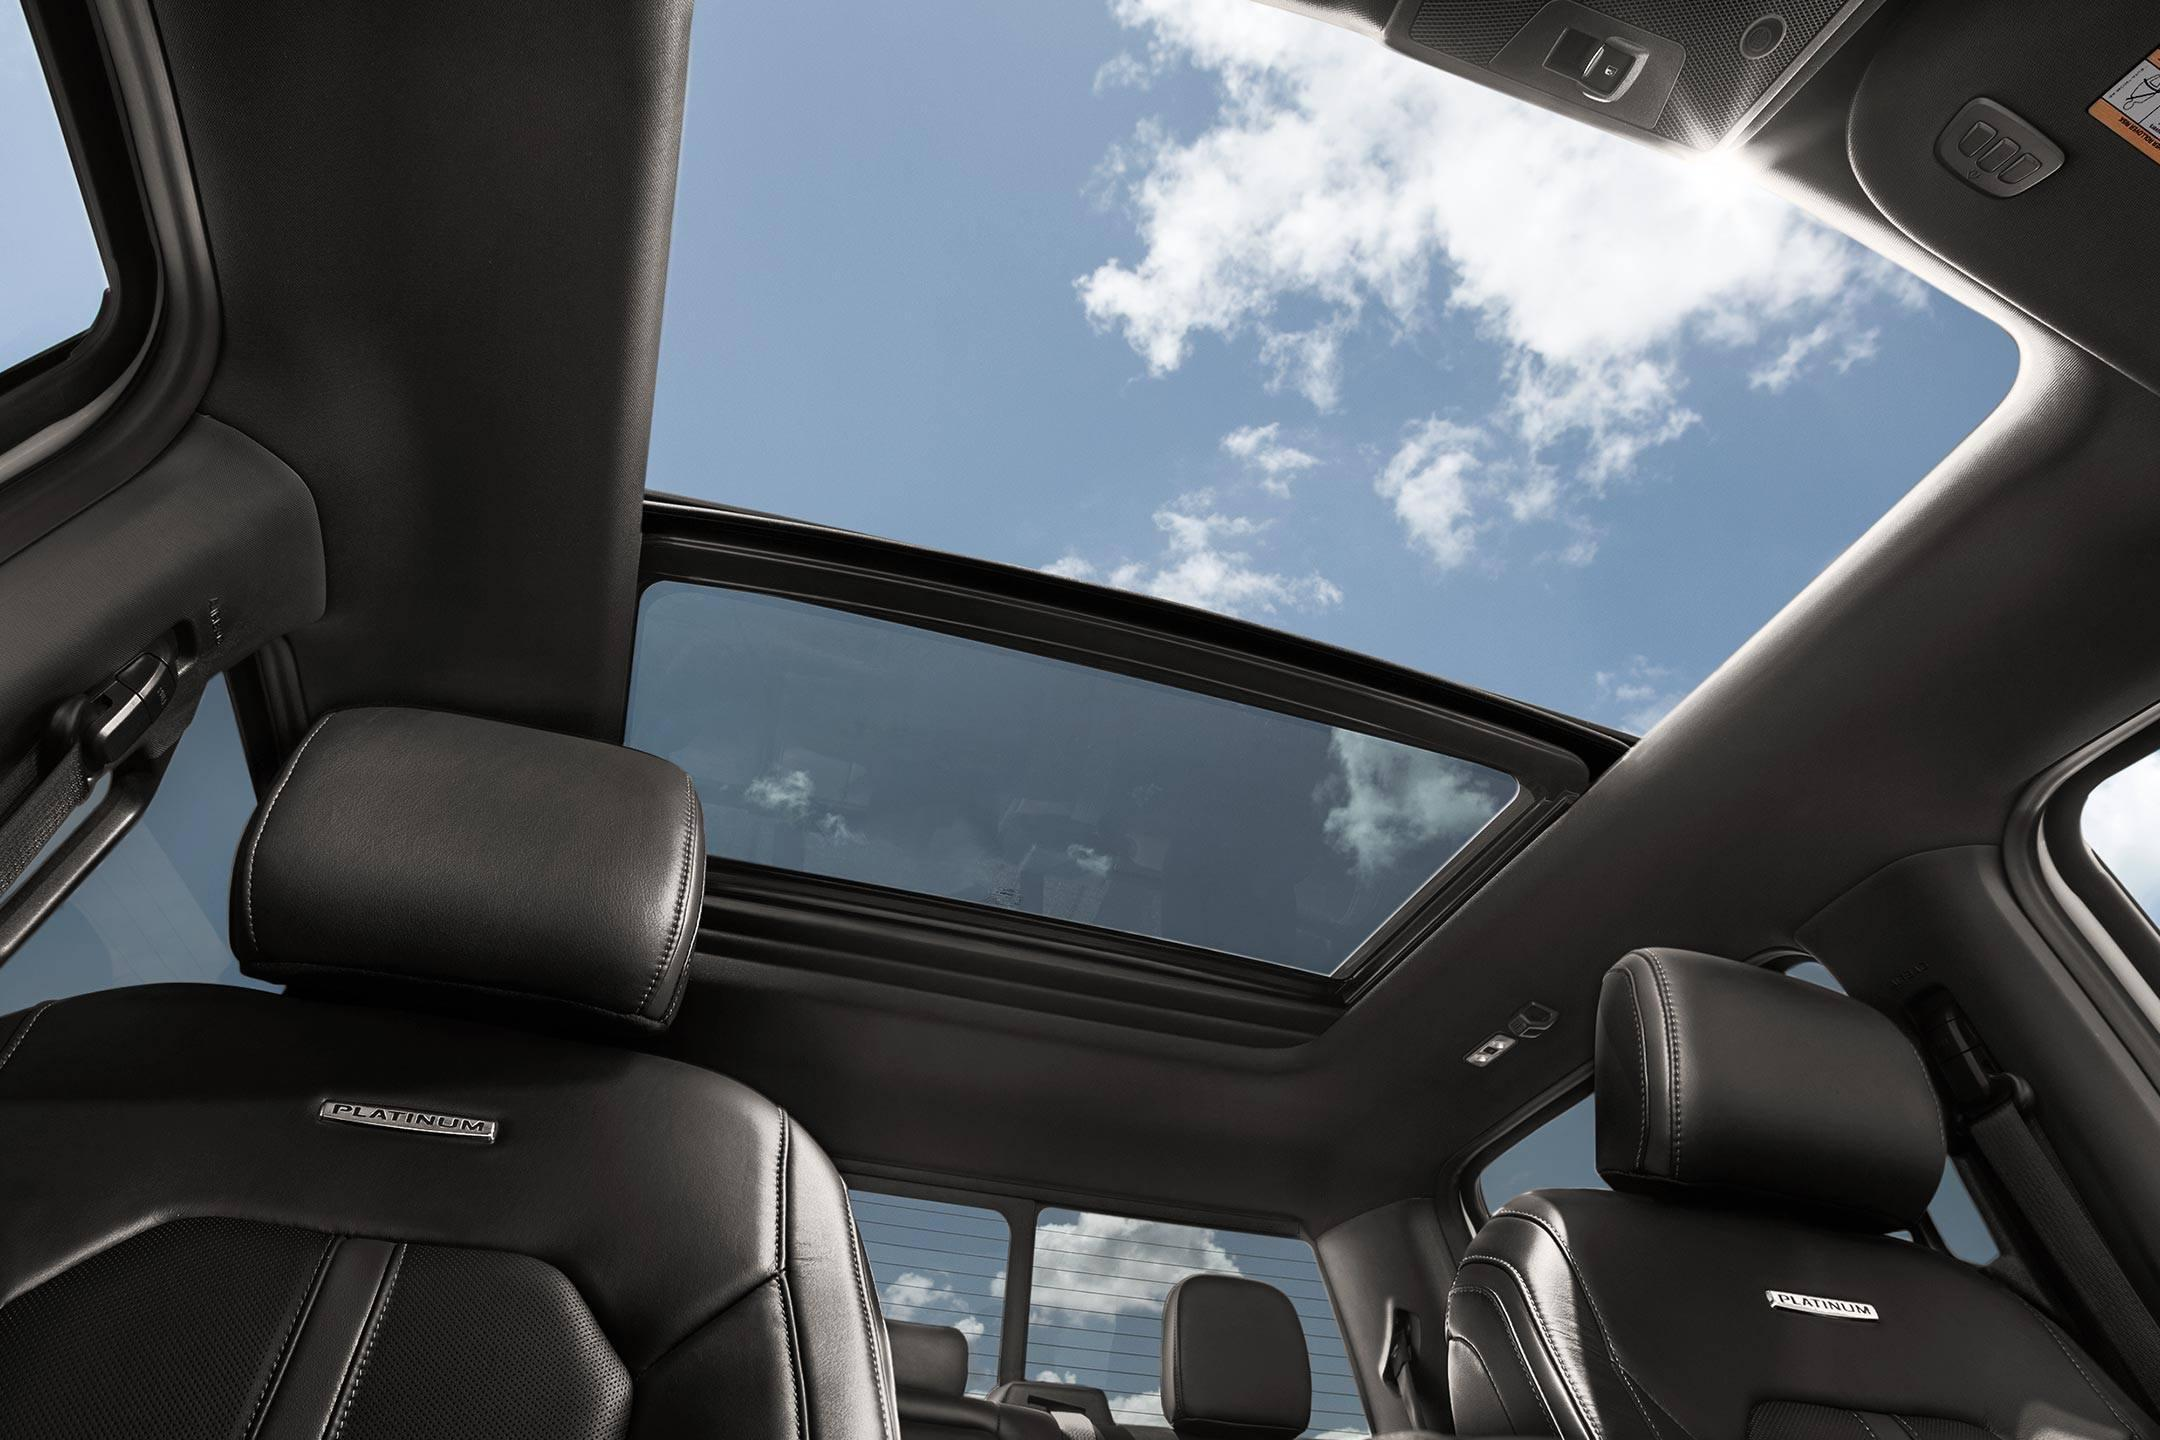 Twin-panel Moonroof on 2019 Ford F-150 XLT SuperCrew from Cabot Ford Lincoln in St. John's, Newfoundland and Labrador (NL)